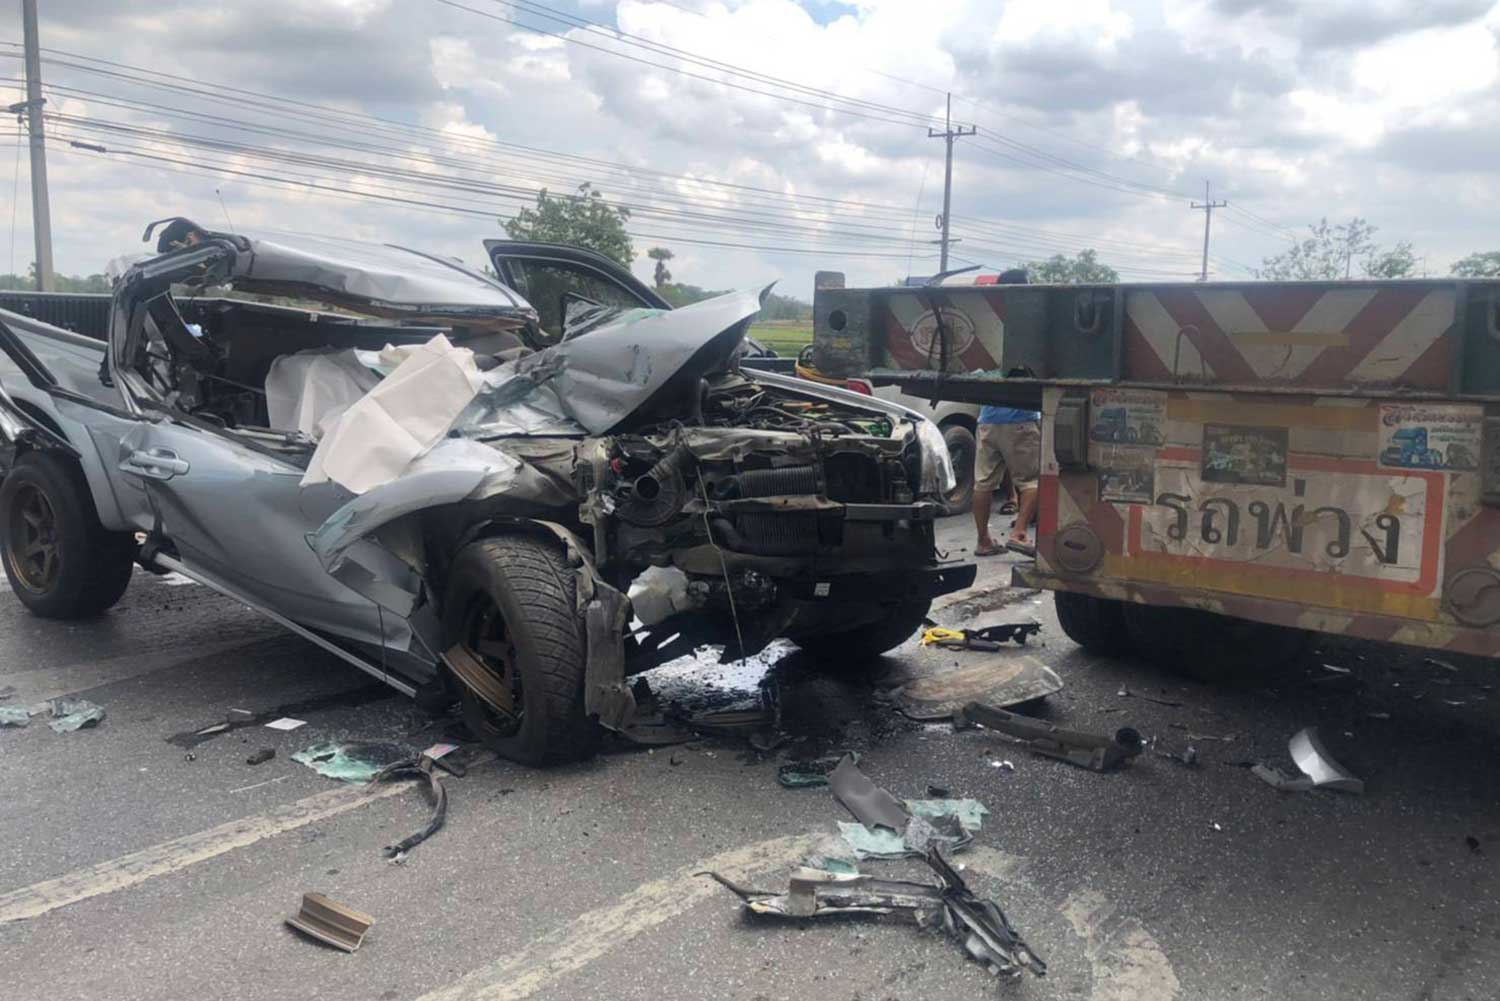 The driver was killed when this pickup truck crashed into the rear of a trailer truck at a U-turn in Non Sung district, Nakhon Ratchasima, on Tuesday afternoon.(Photo: Prasit Tangprasert)